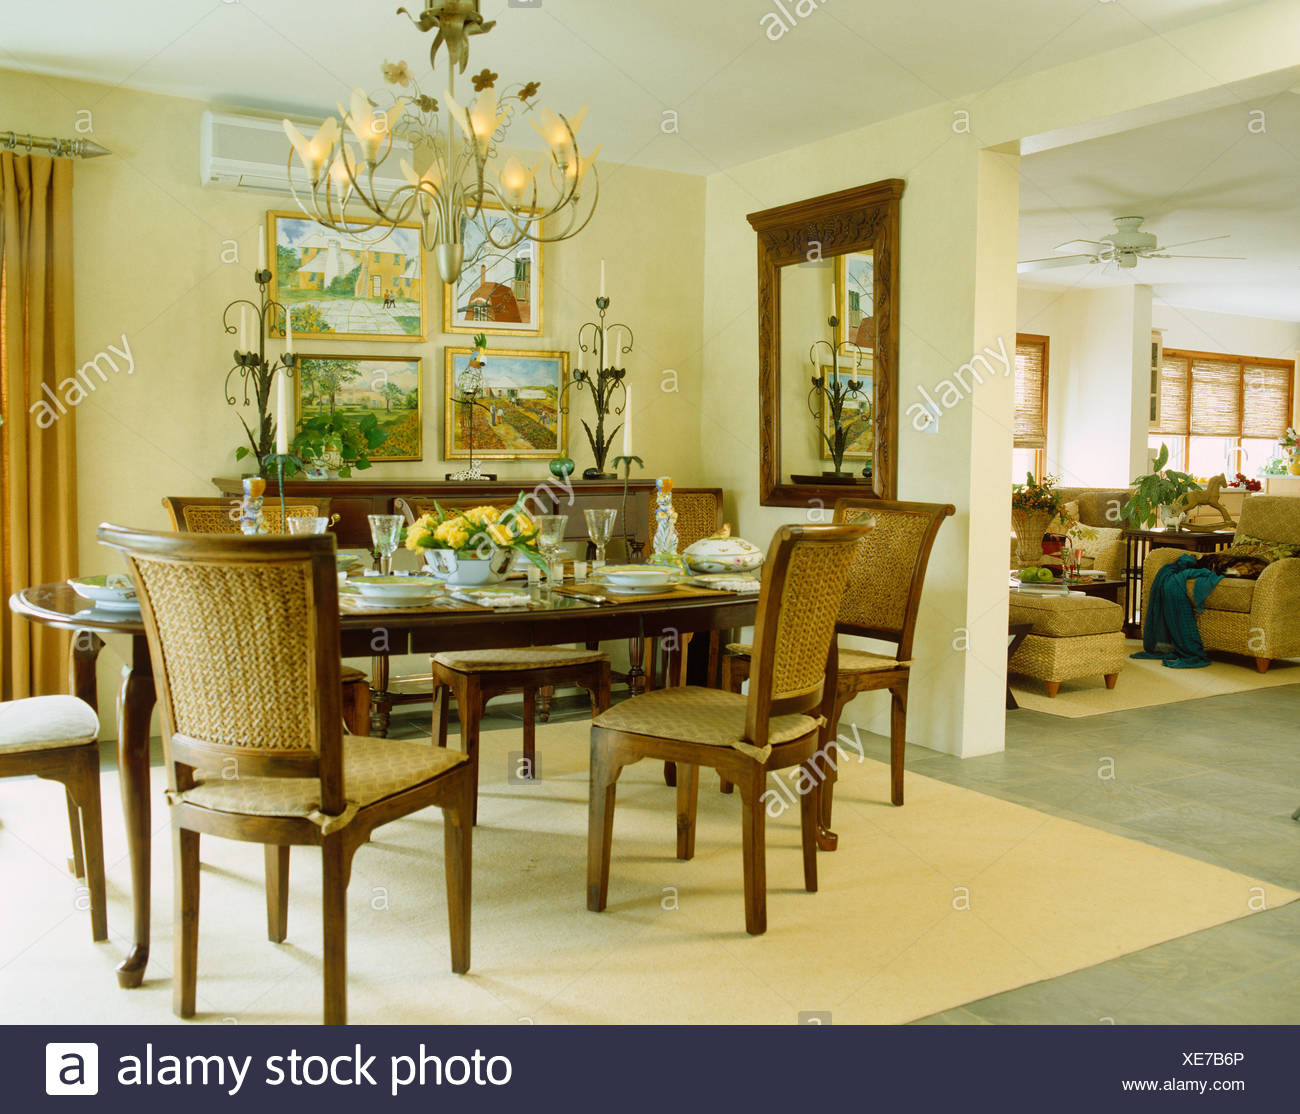 Ornate Metal Chandelier Above Upholstered Chairs And Dark Wood Table Set  For Lunch In Yellow Open Plan Dining Room